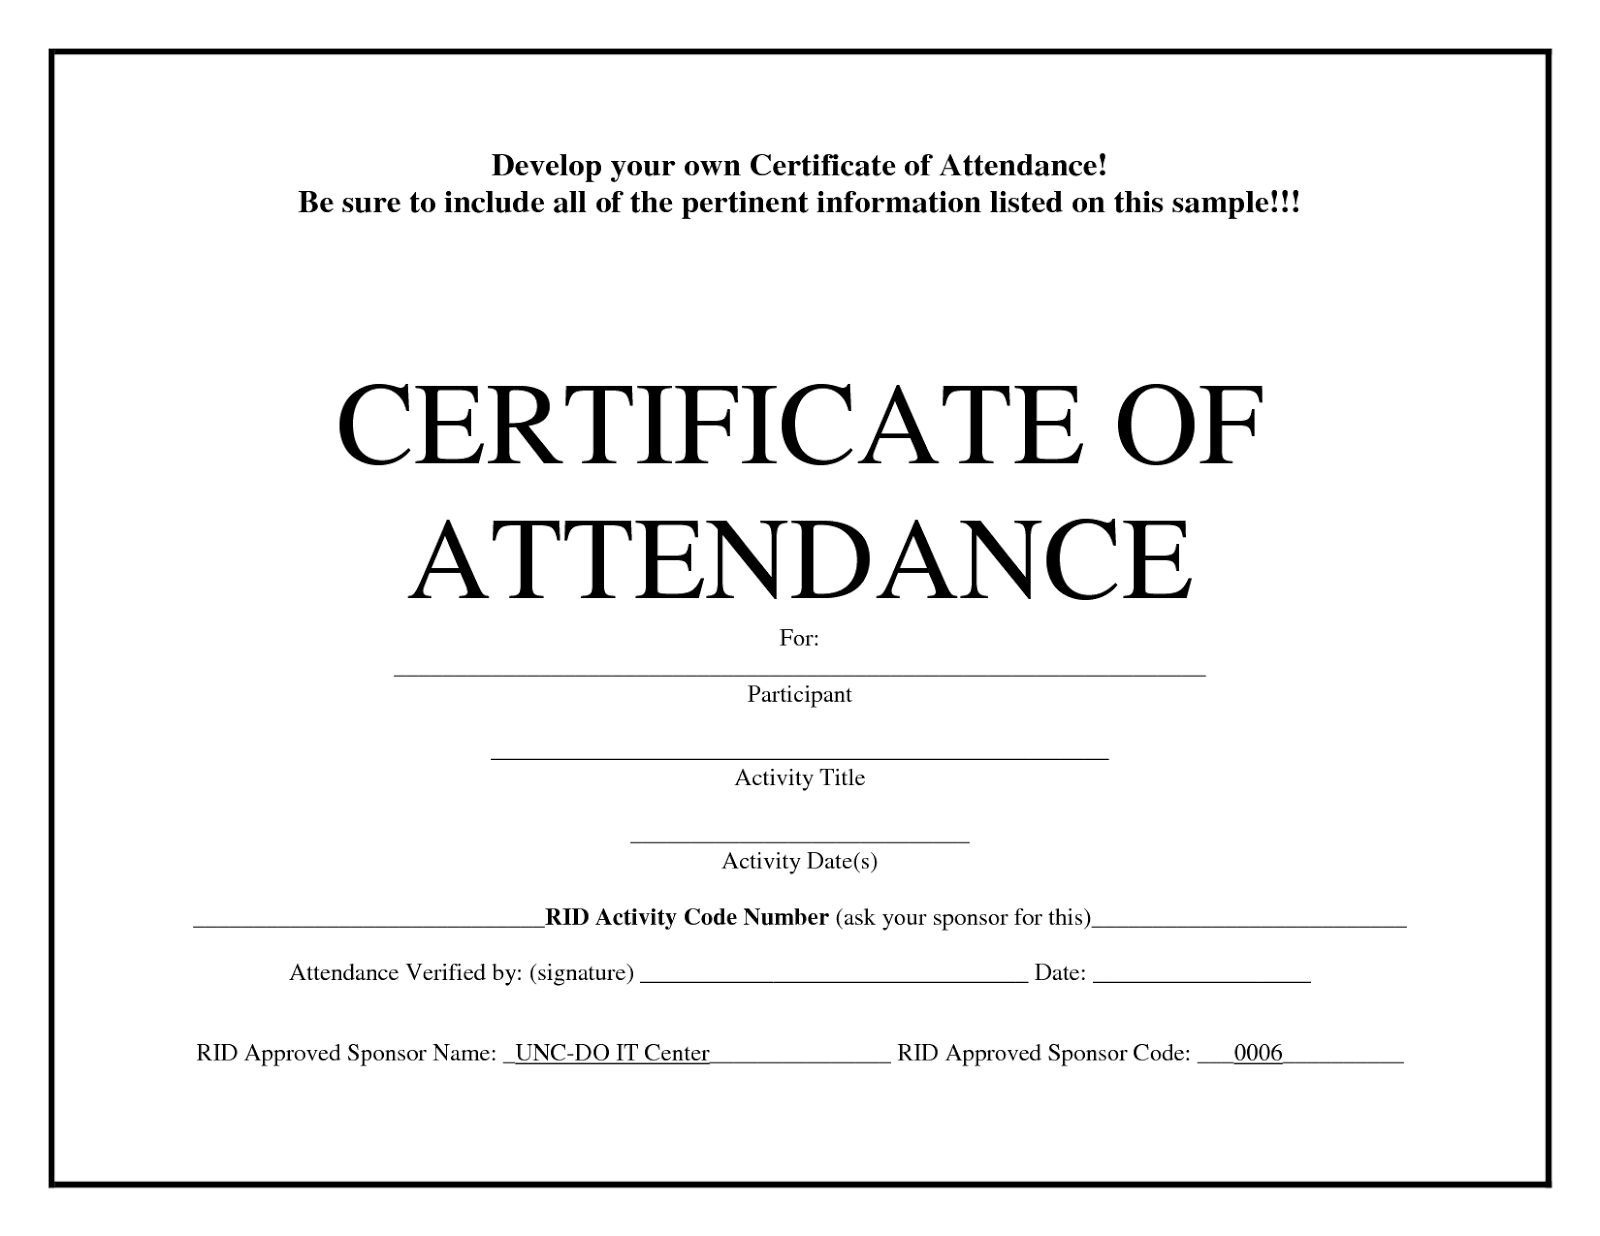 Perfect attendance certificate free download roho4senses perfect attendance certificate free download yelopaper Images